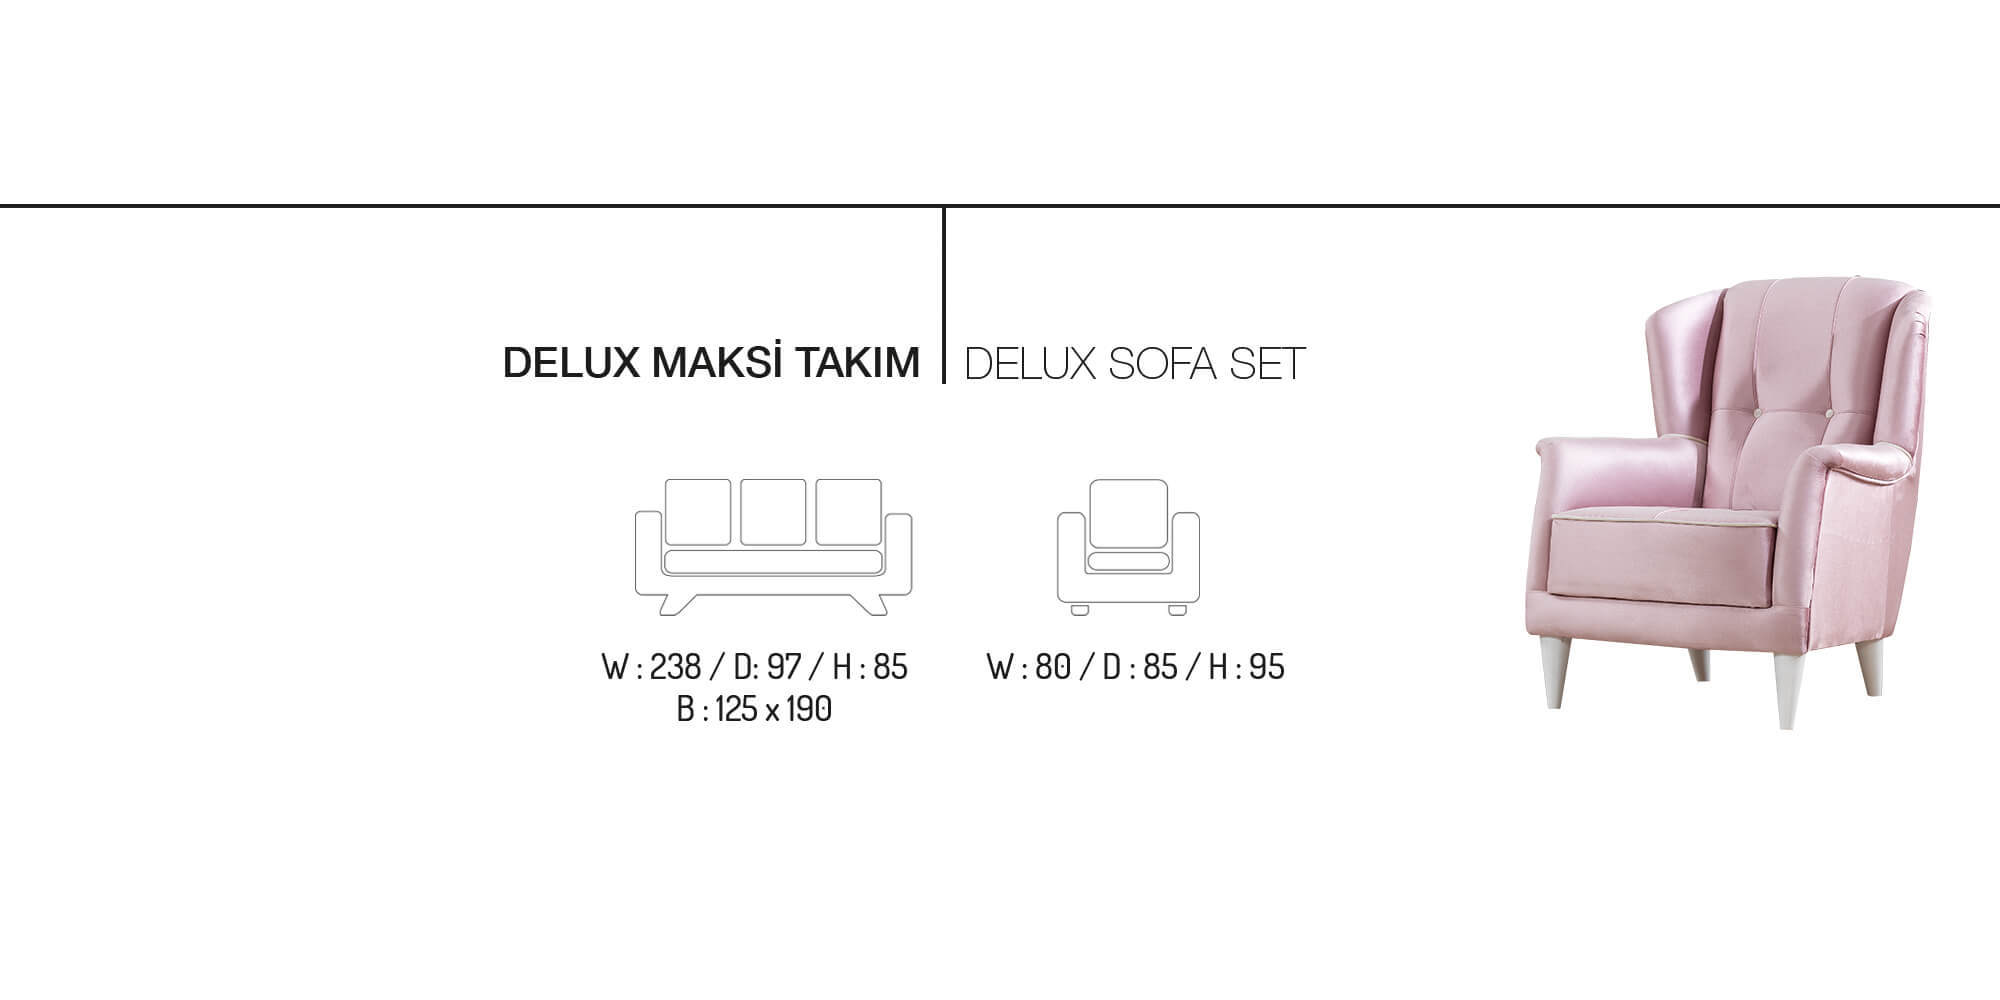 star-deluxe-sofa-set-4